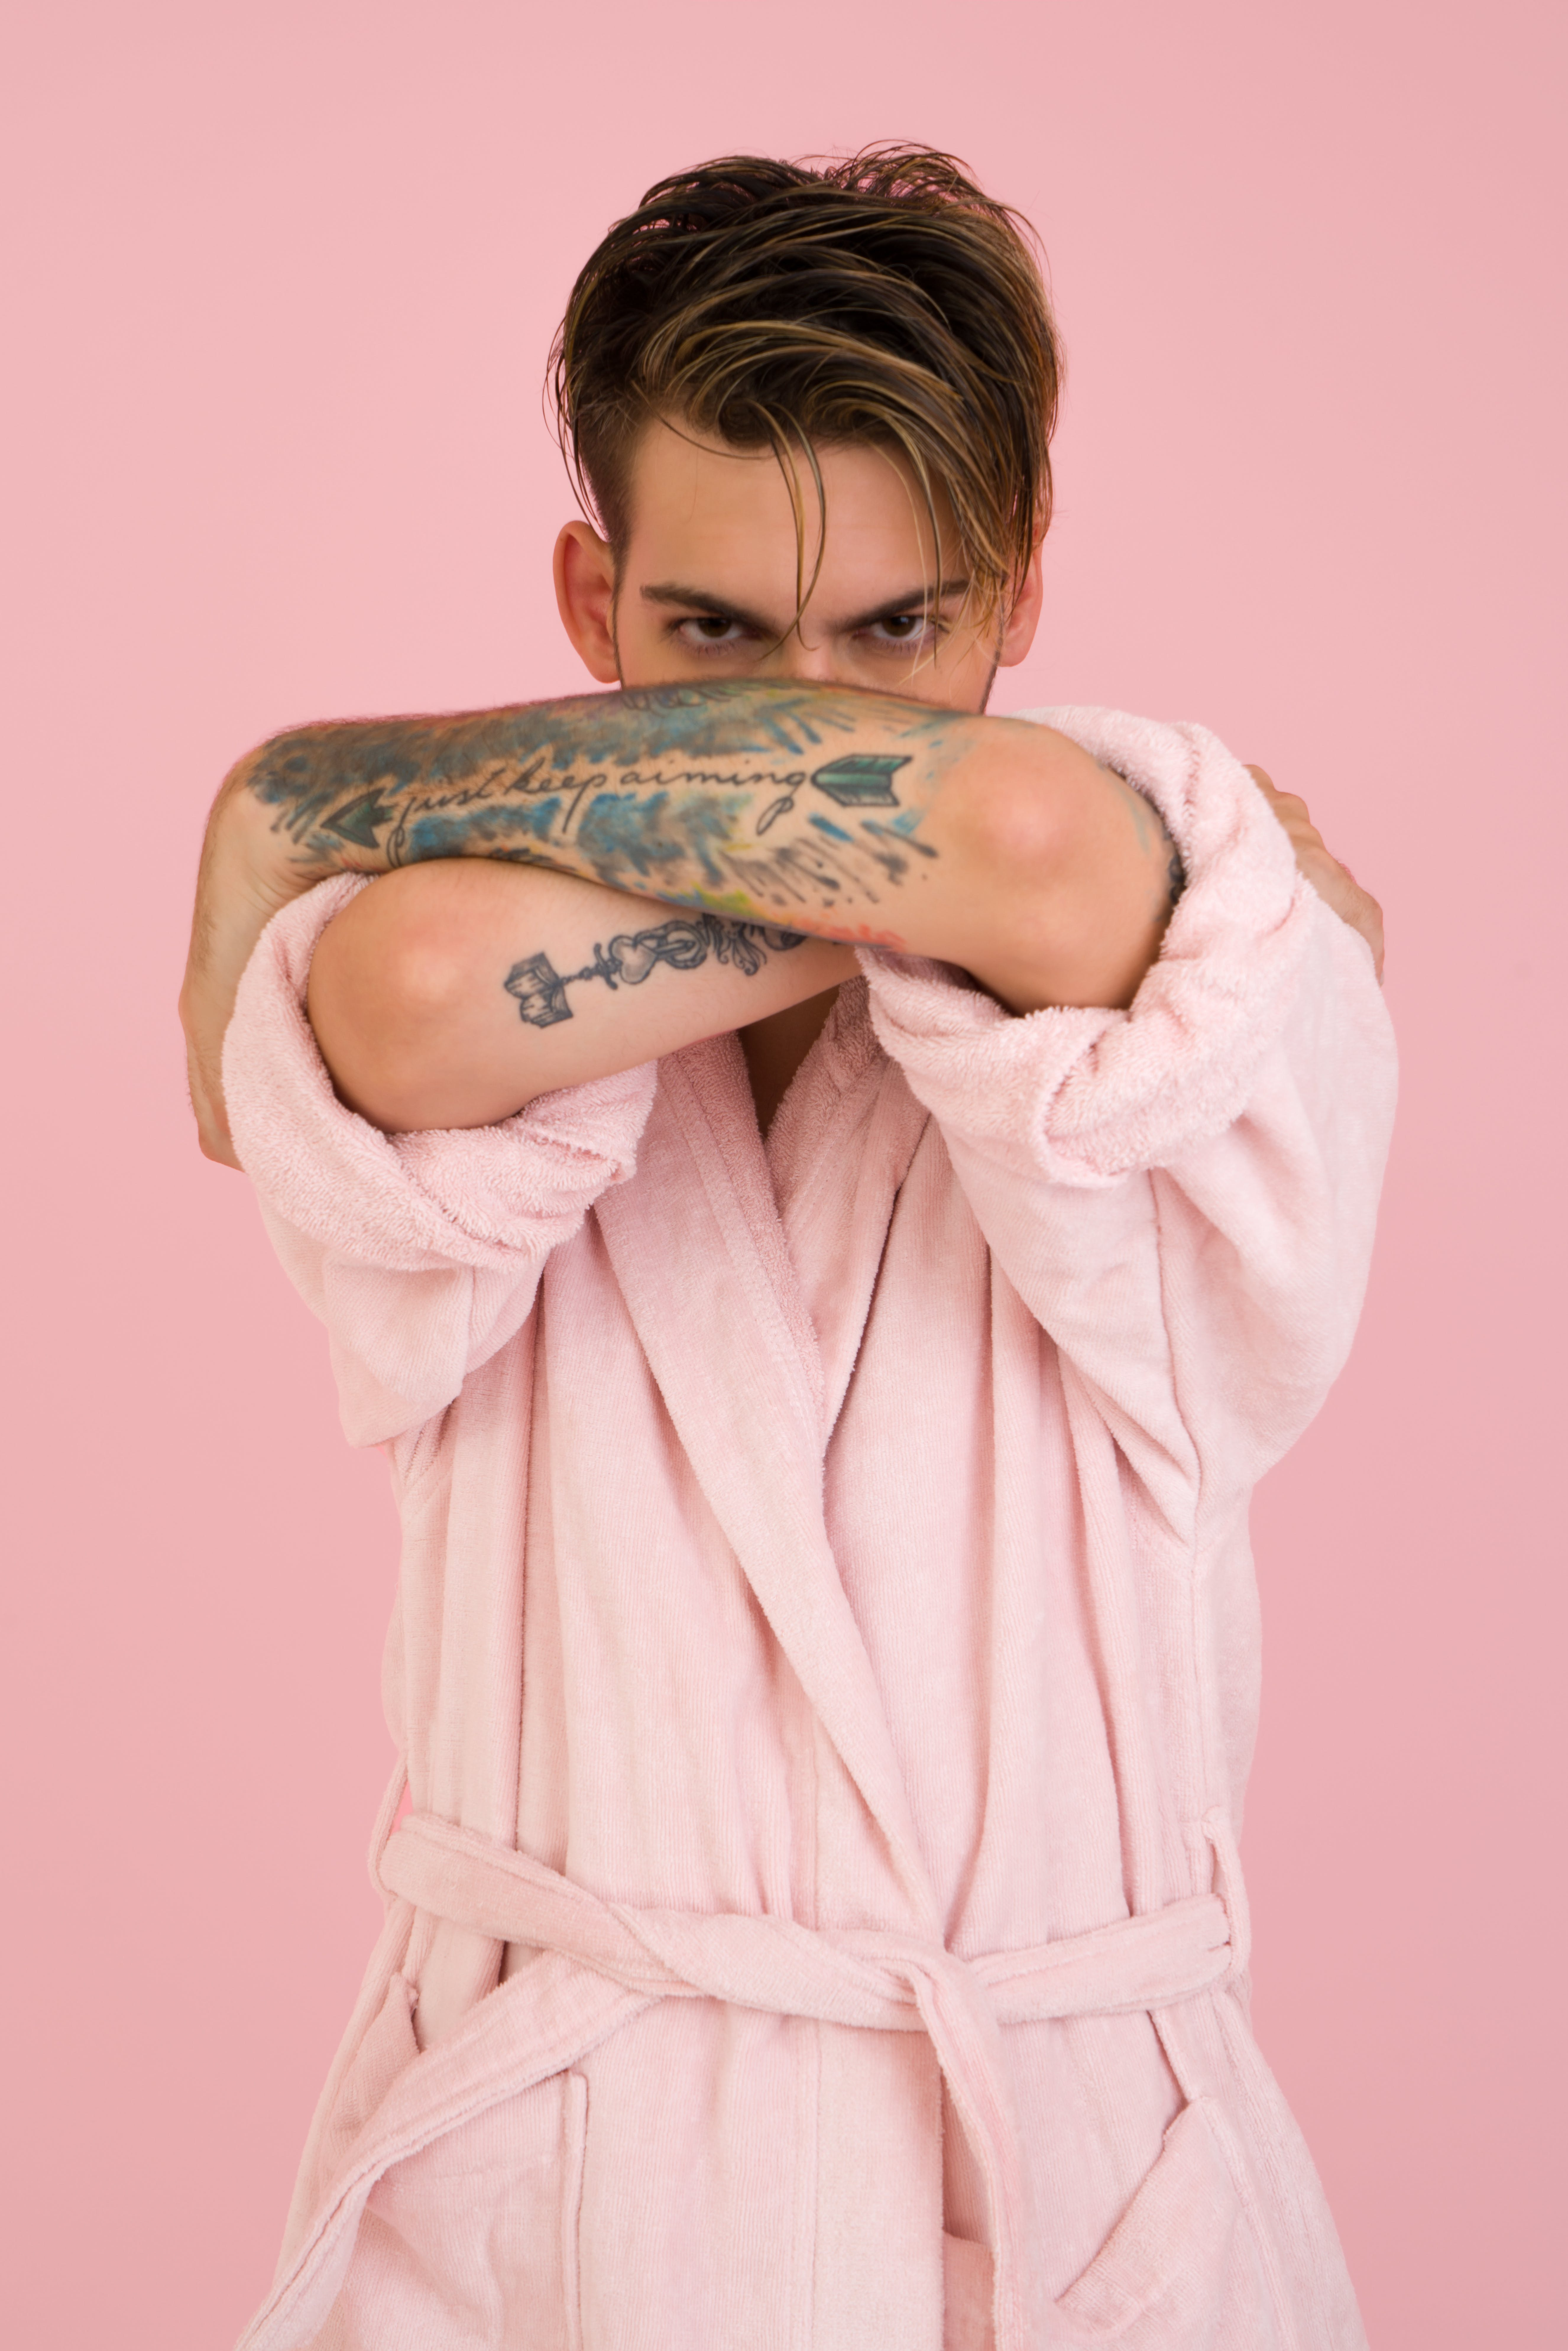 Man Wearing White Bathrobe Stands Near Pink Wall